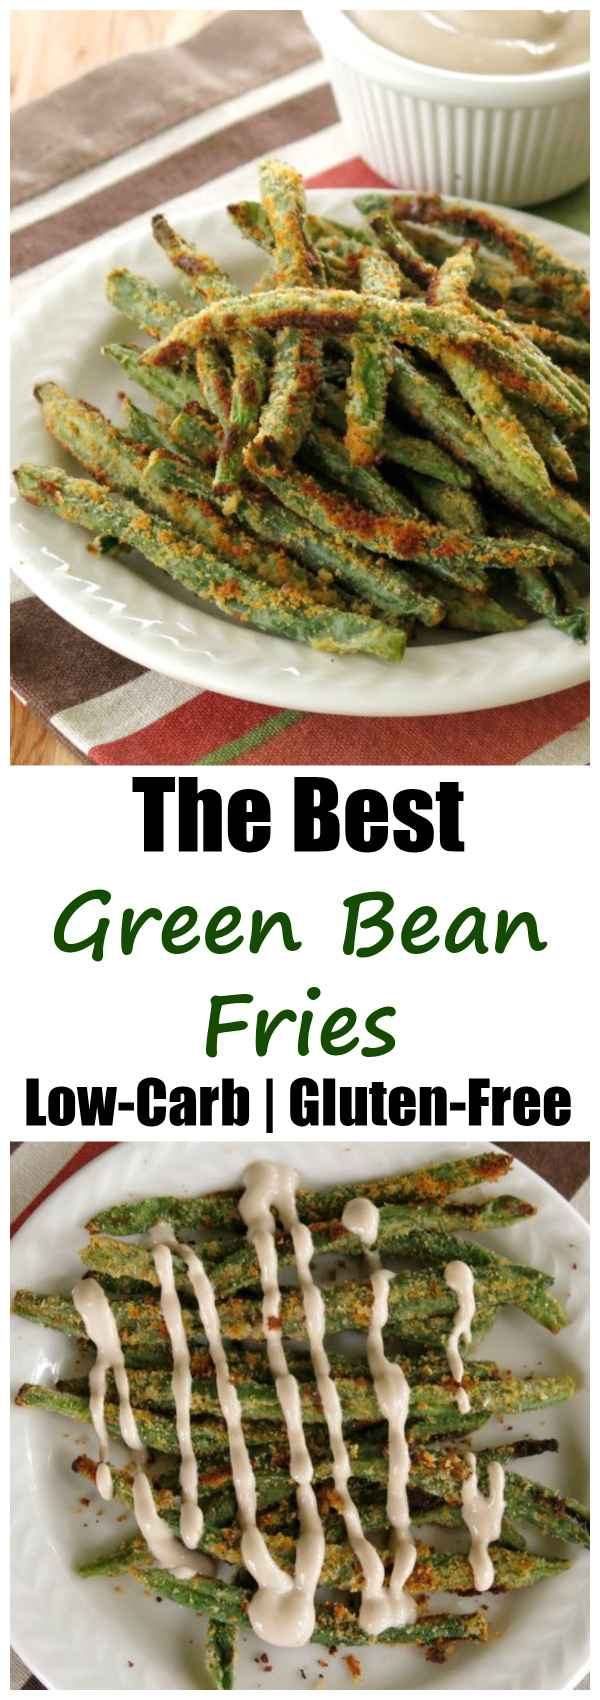 Dunk Crispy Baked Green Bean Fries in Balsamic Yogurt Dip or eat them hot out of the oven with this easy recipe. You'll satisfy your need to crunch with a veggie! Low-carb | Gluten-free